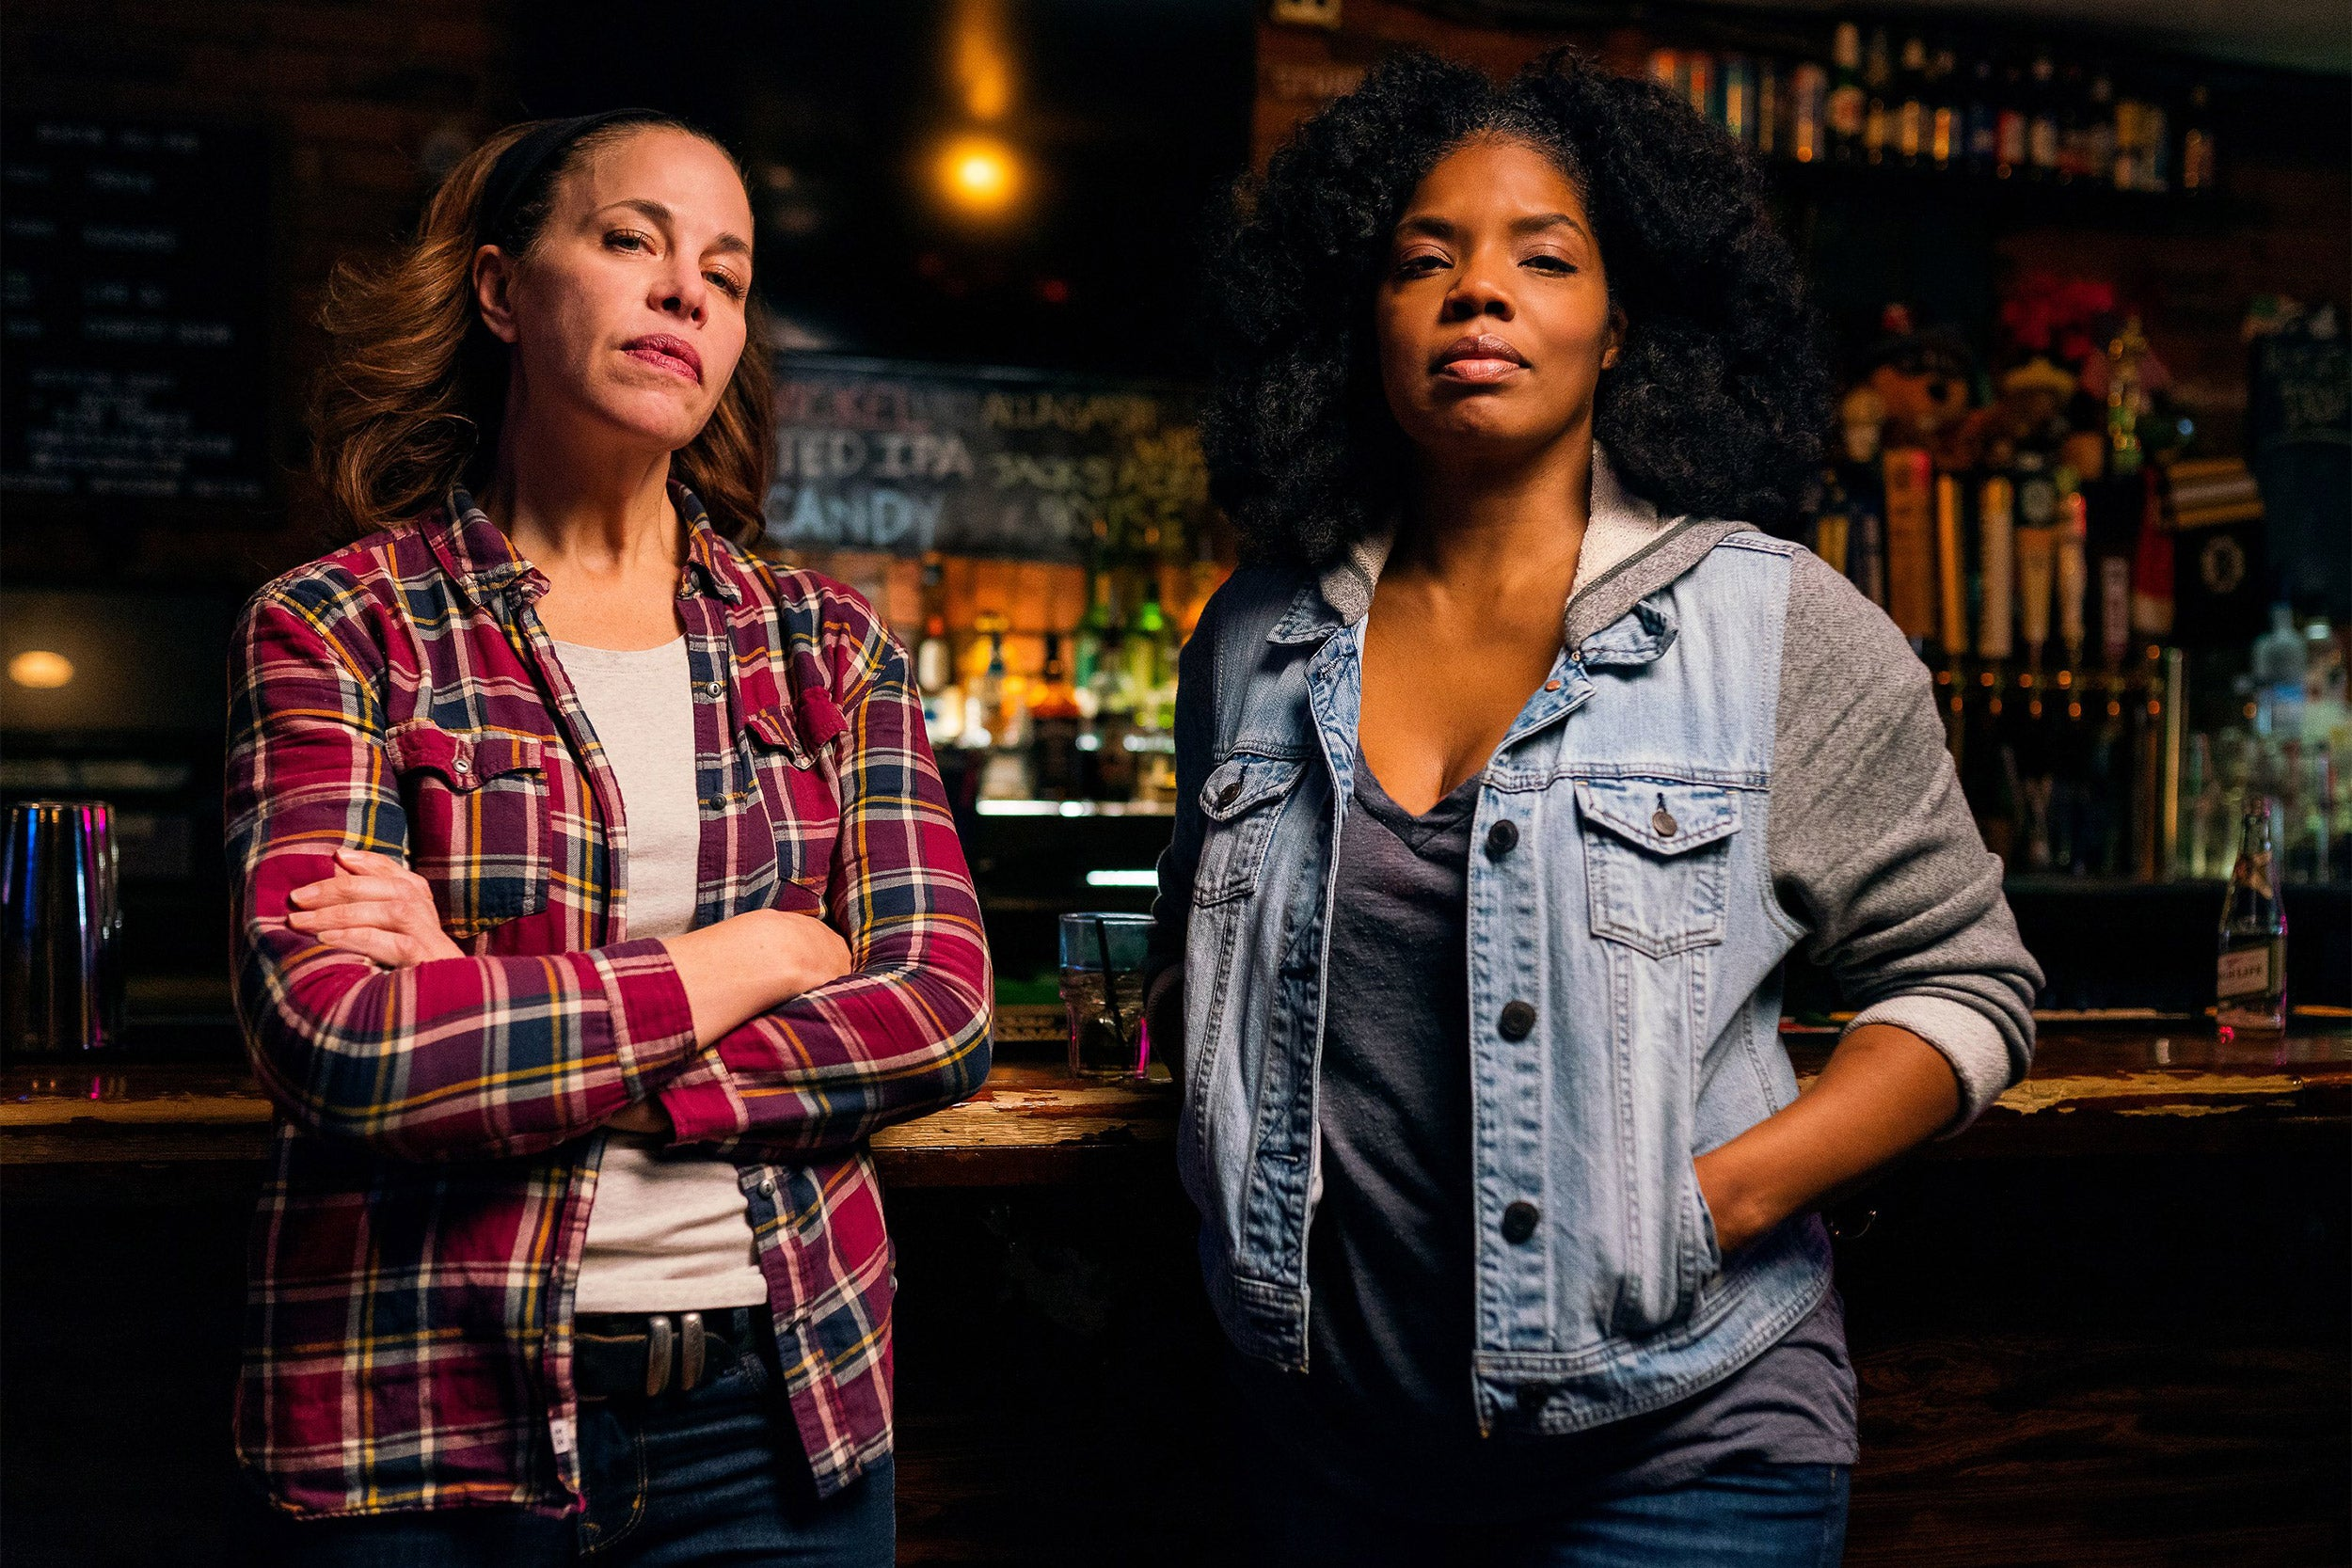 Two women standing in a bar.